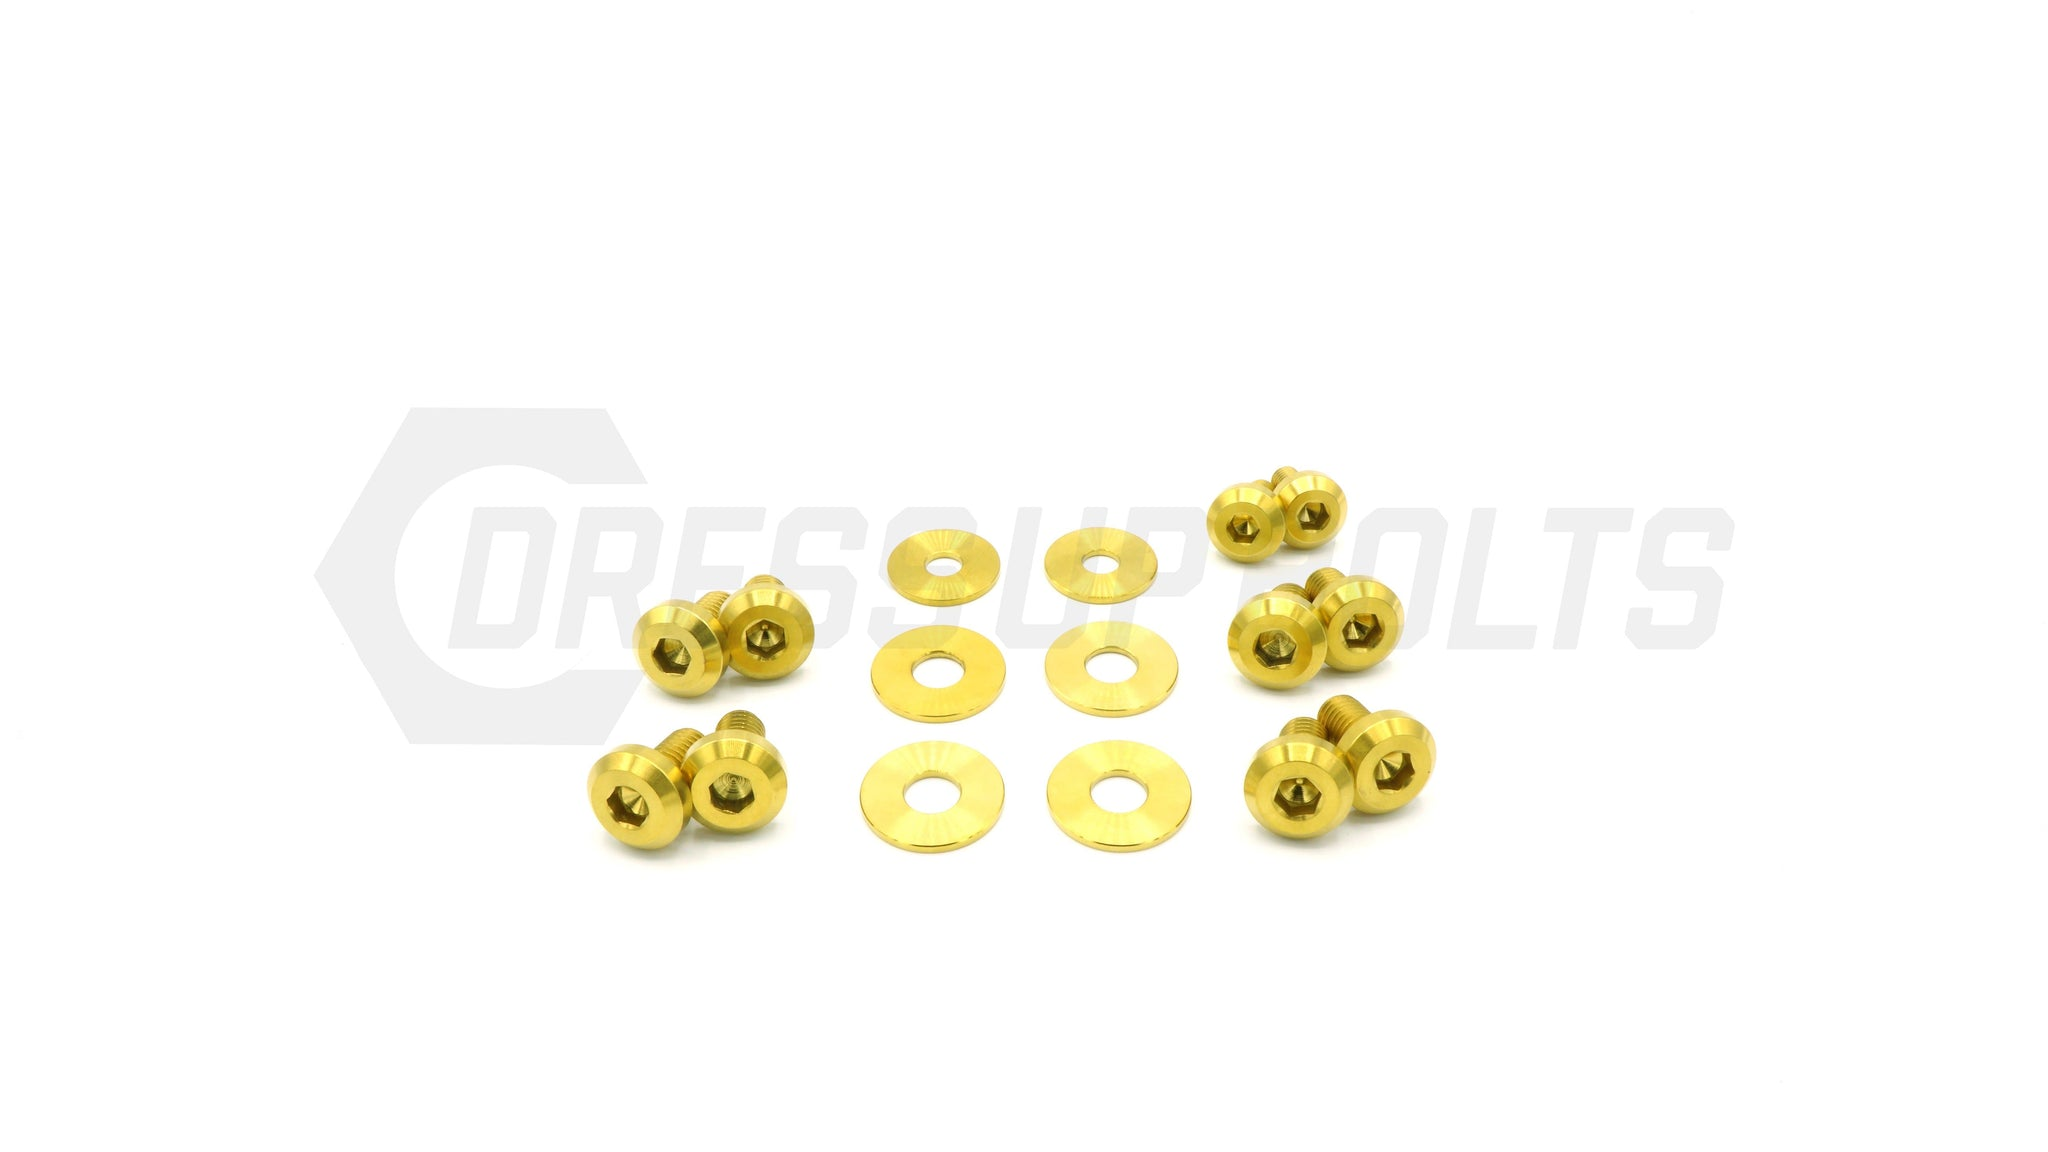 Subaru BRZ (2013-2019) Titanium Dress Up Bolts Trunk Kit - DressUpBolts.com